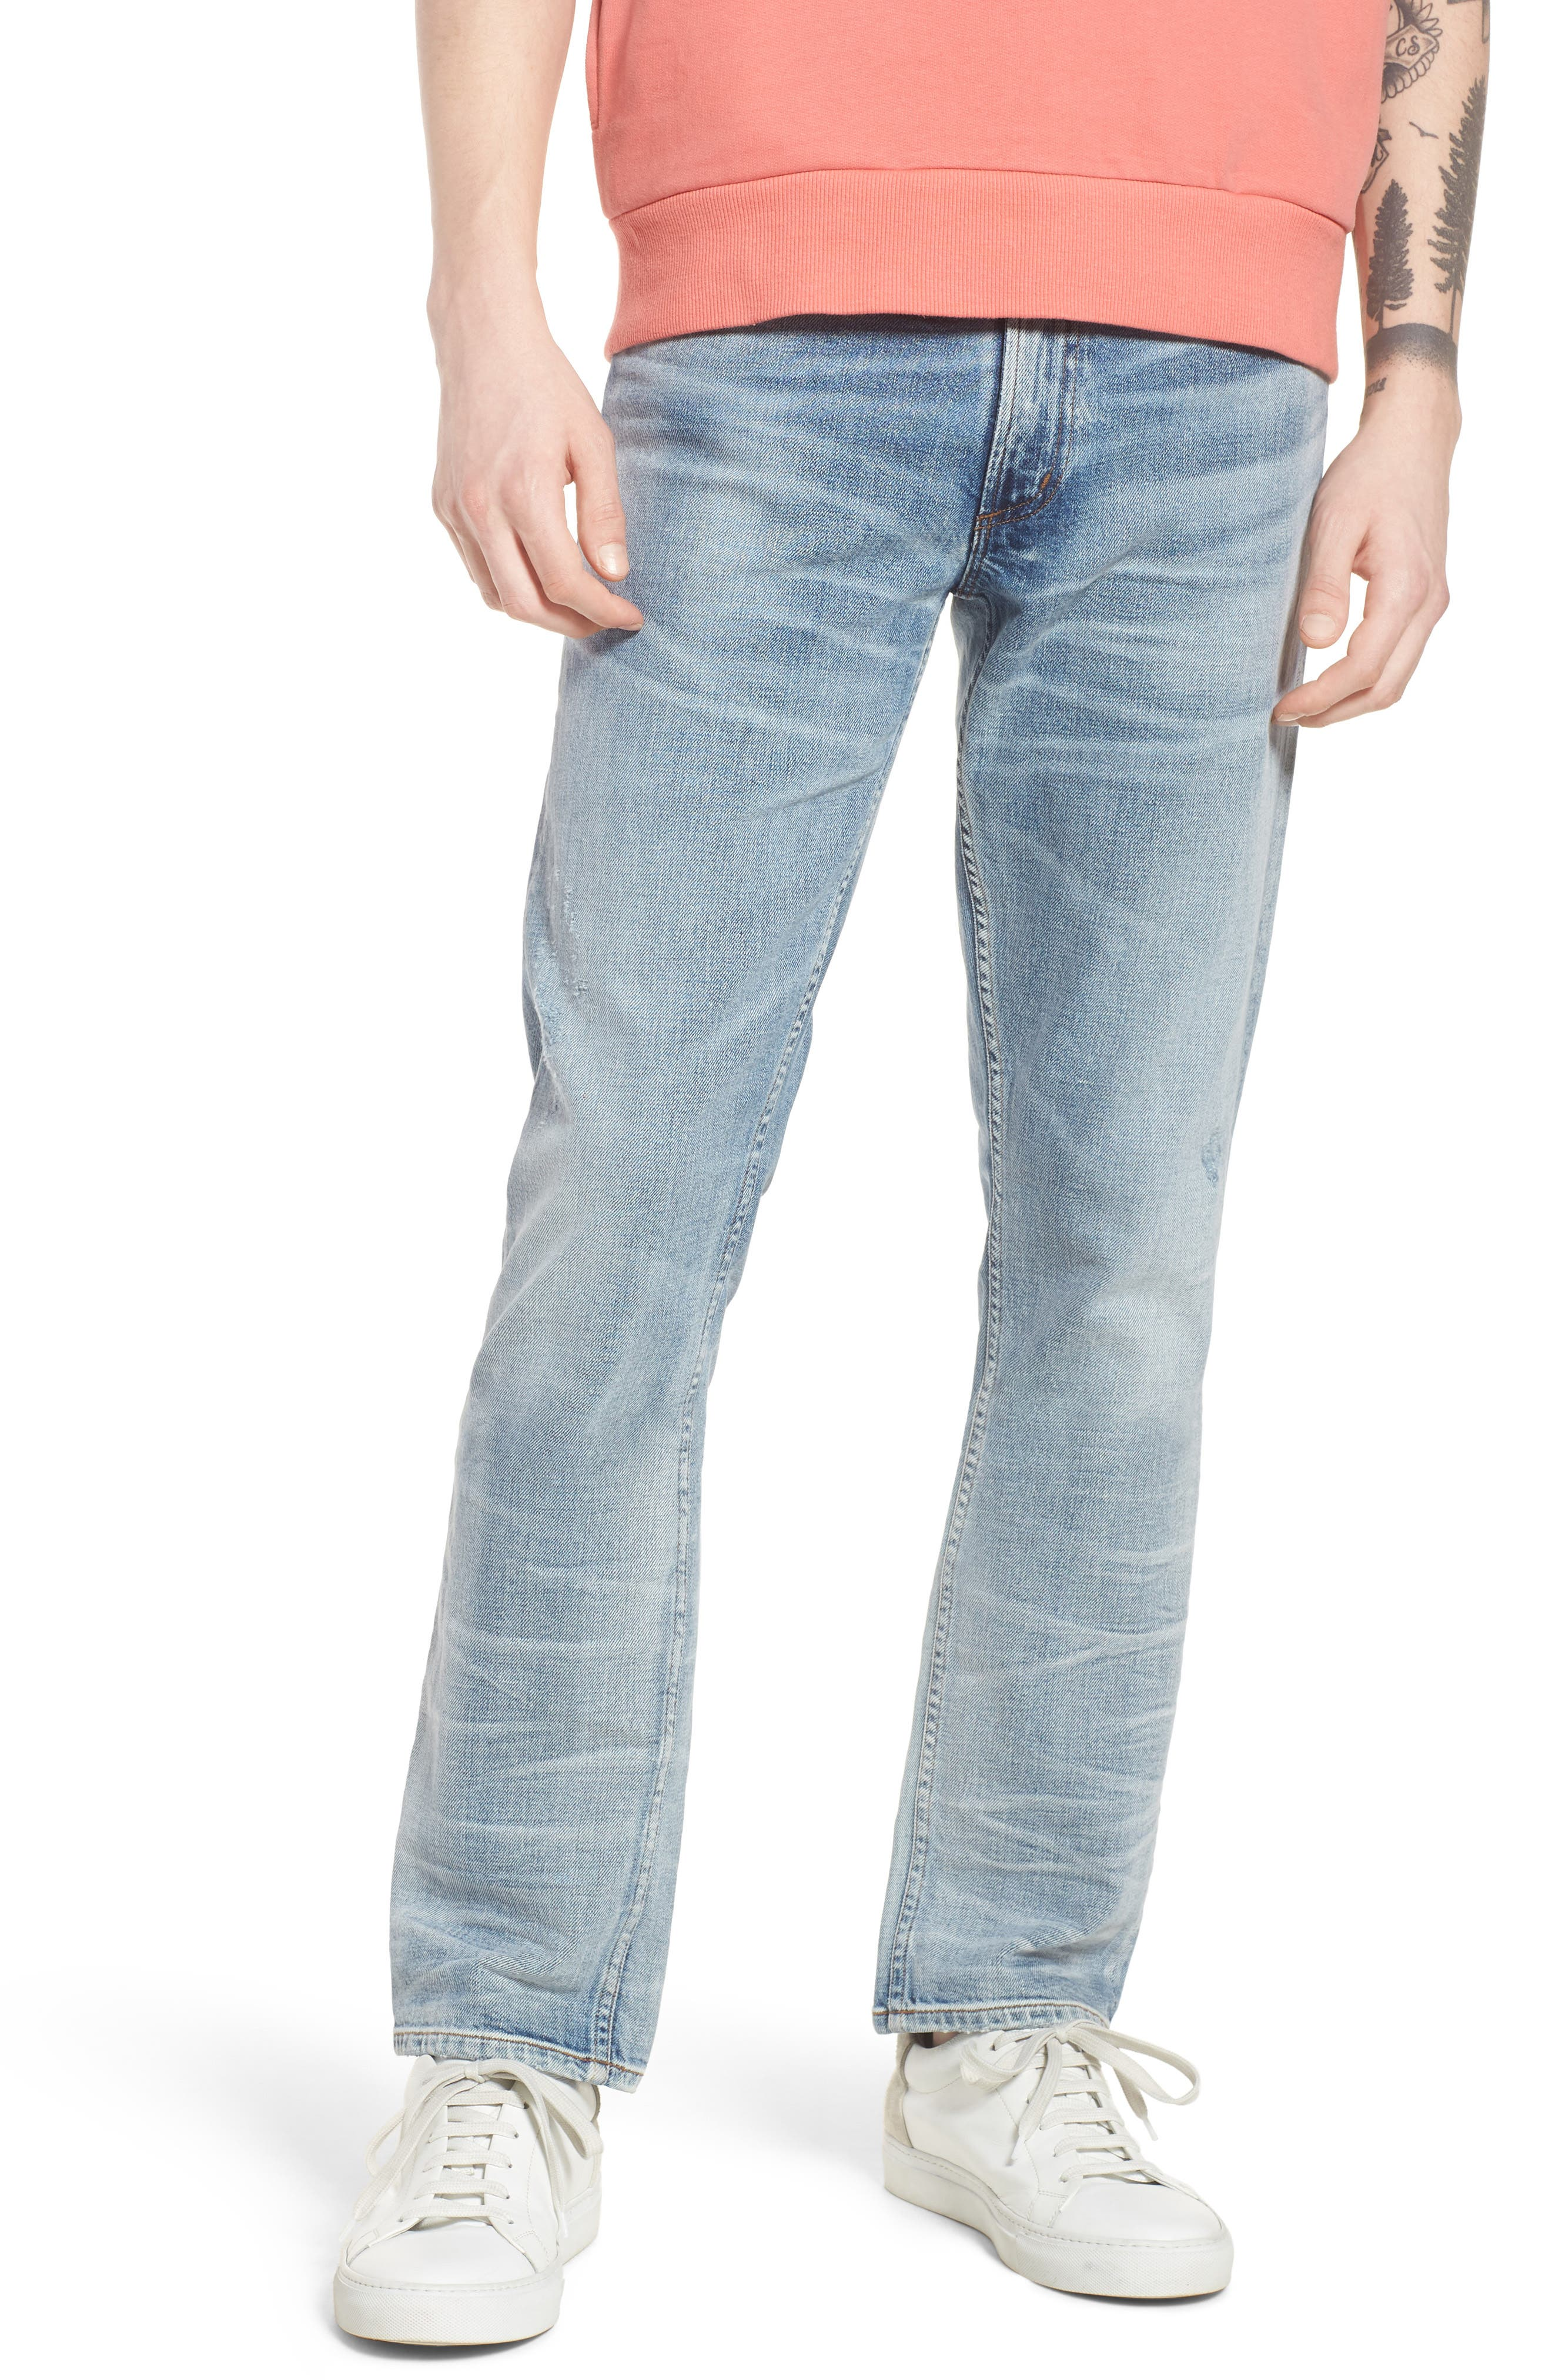 Bowery Slim Fit Jeans,                             Main thumbnail 1, color,                             Lone Pine